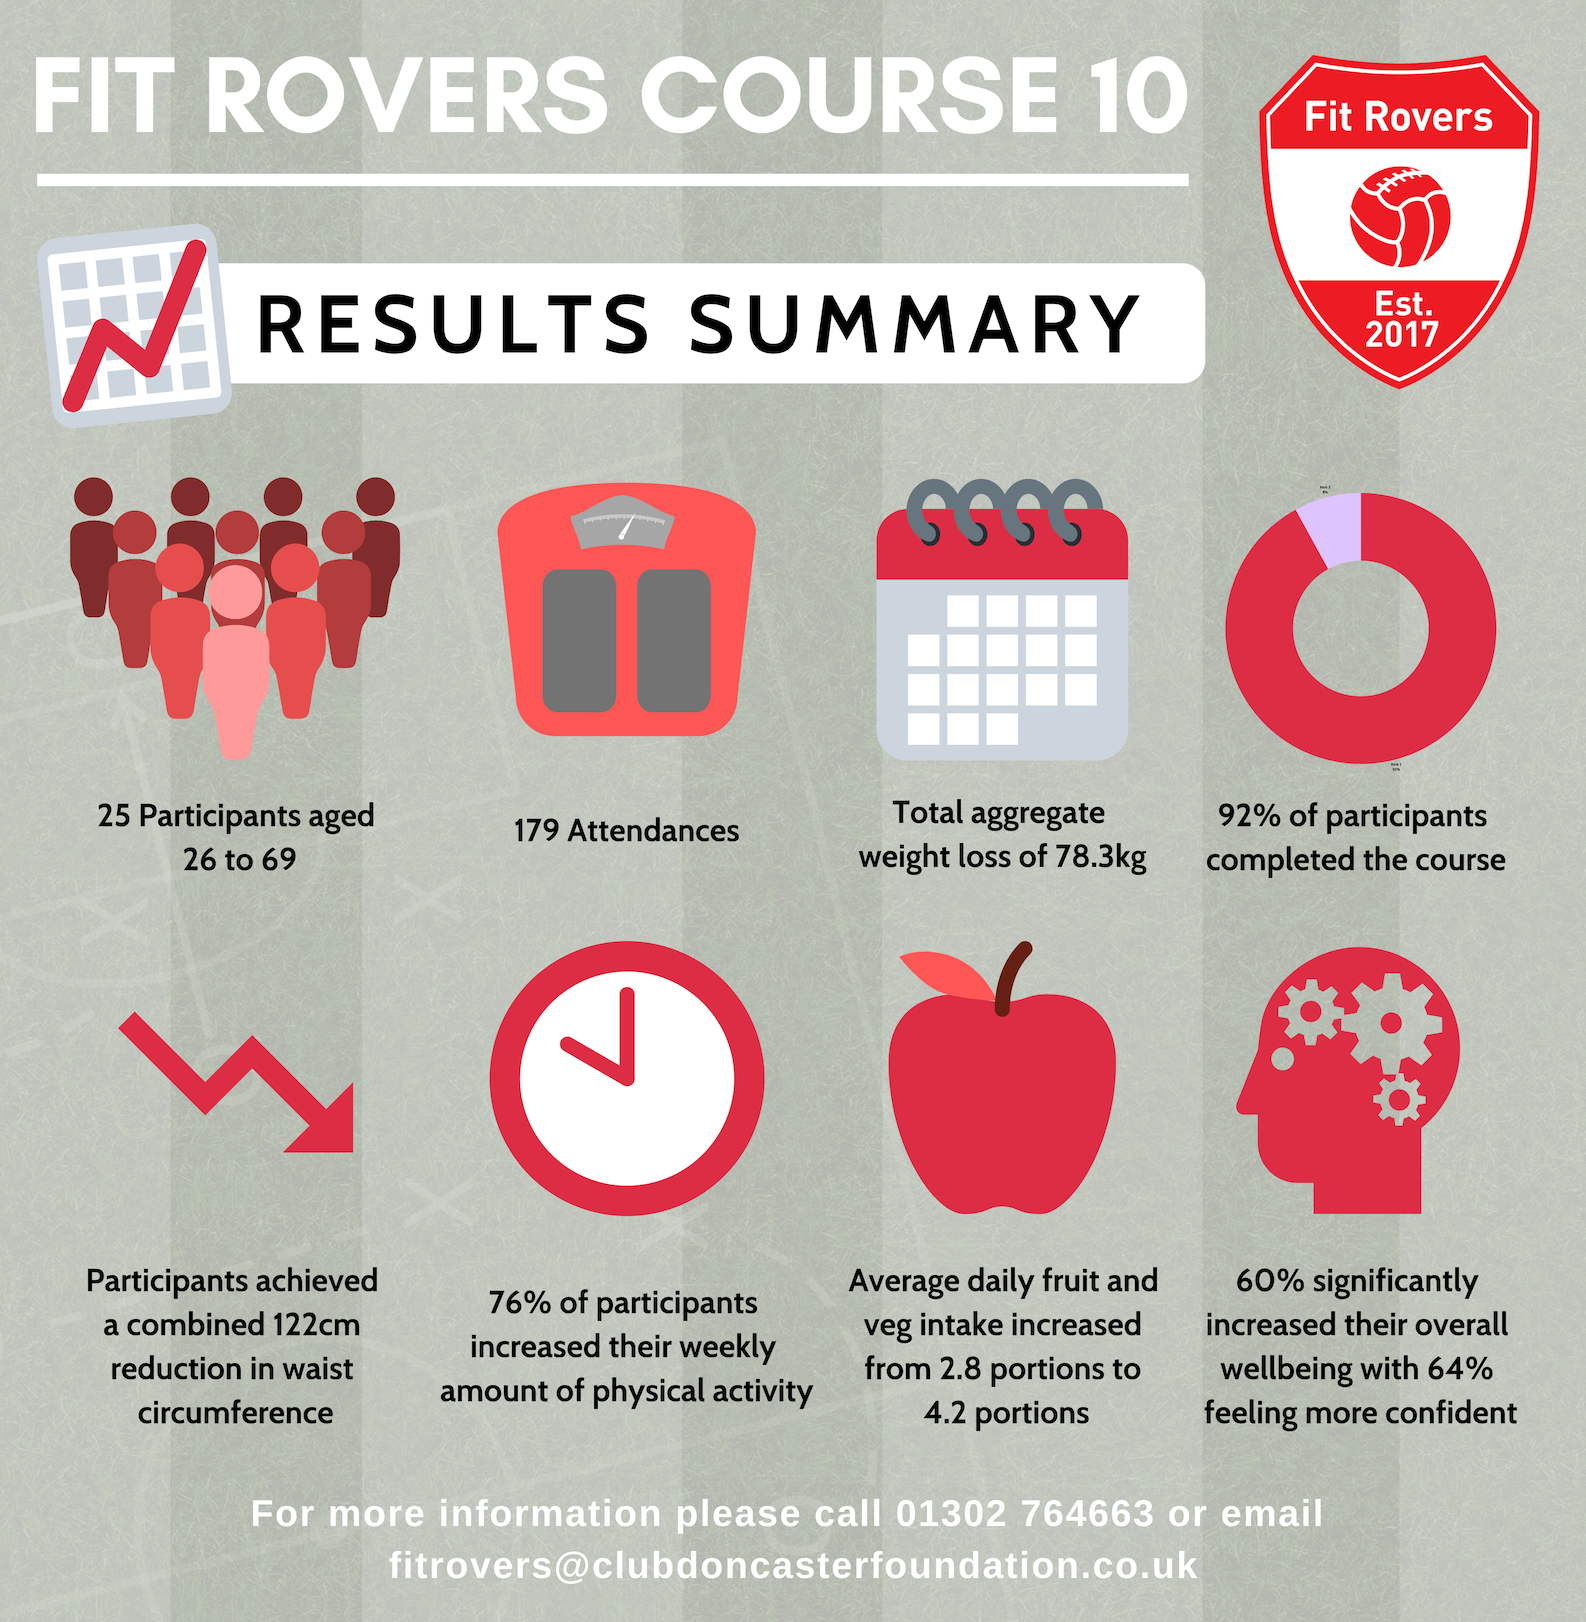 fit-rovers-course-10-stats.png